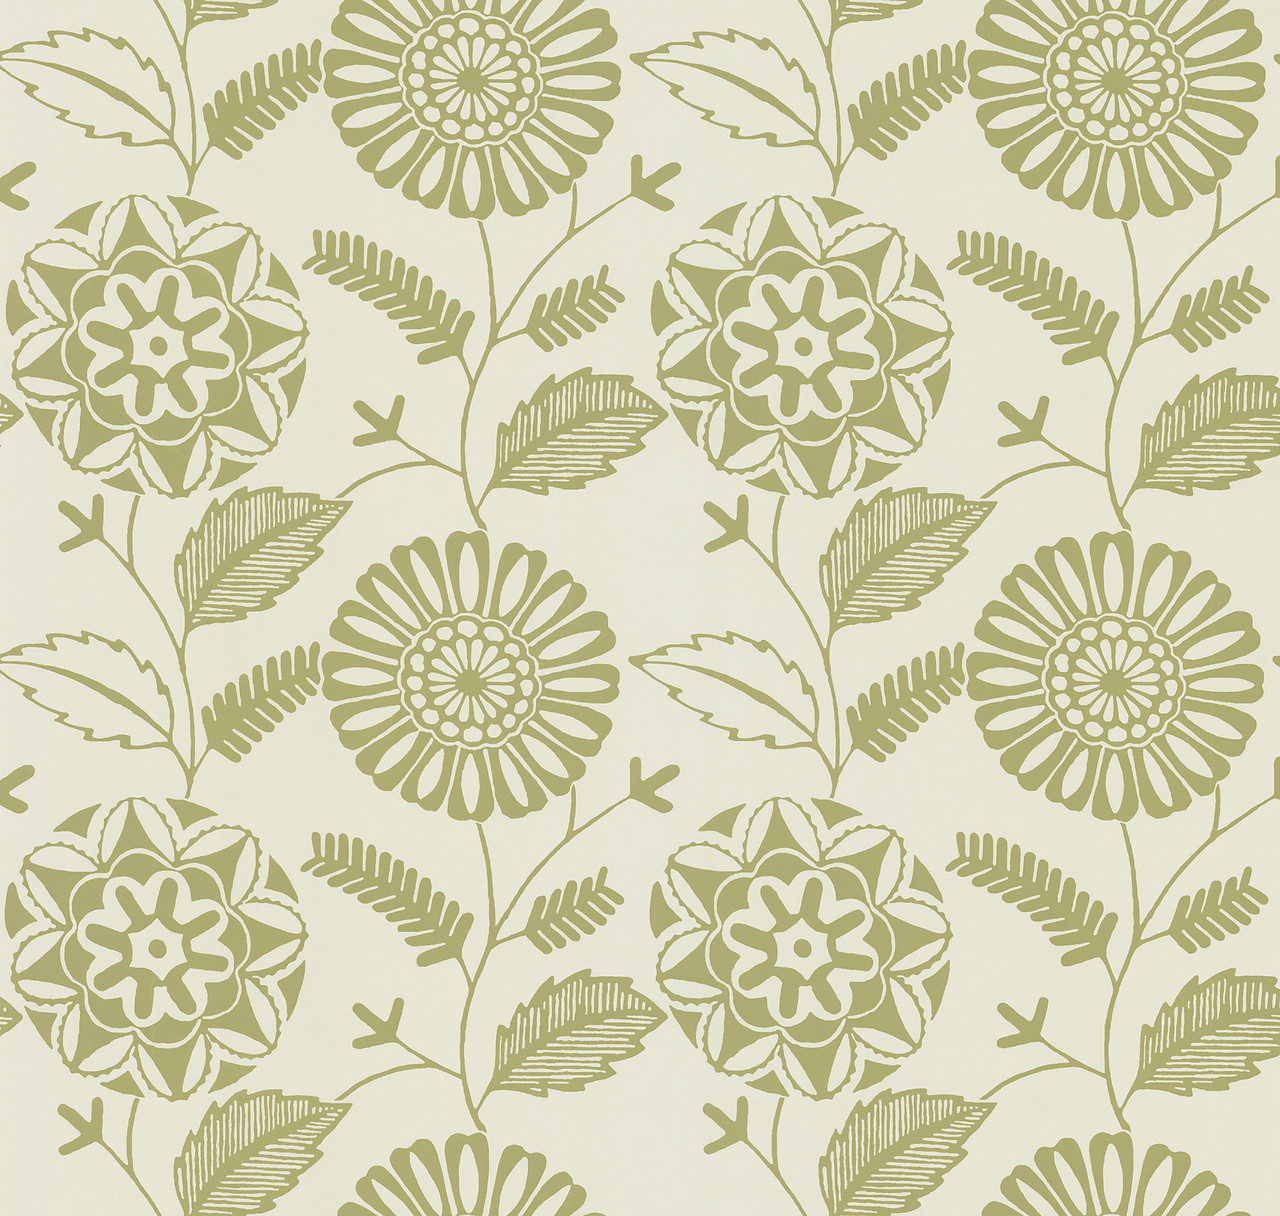 566 43957 Resort Beige Modern Floral Wallpaper Indoorwallpaper Com